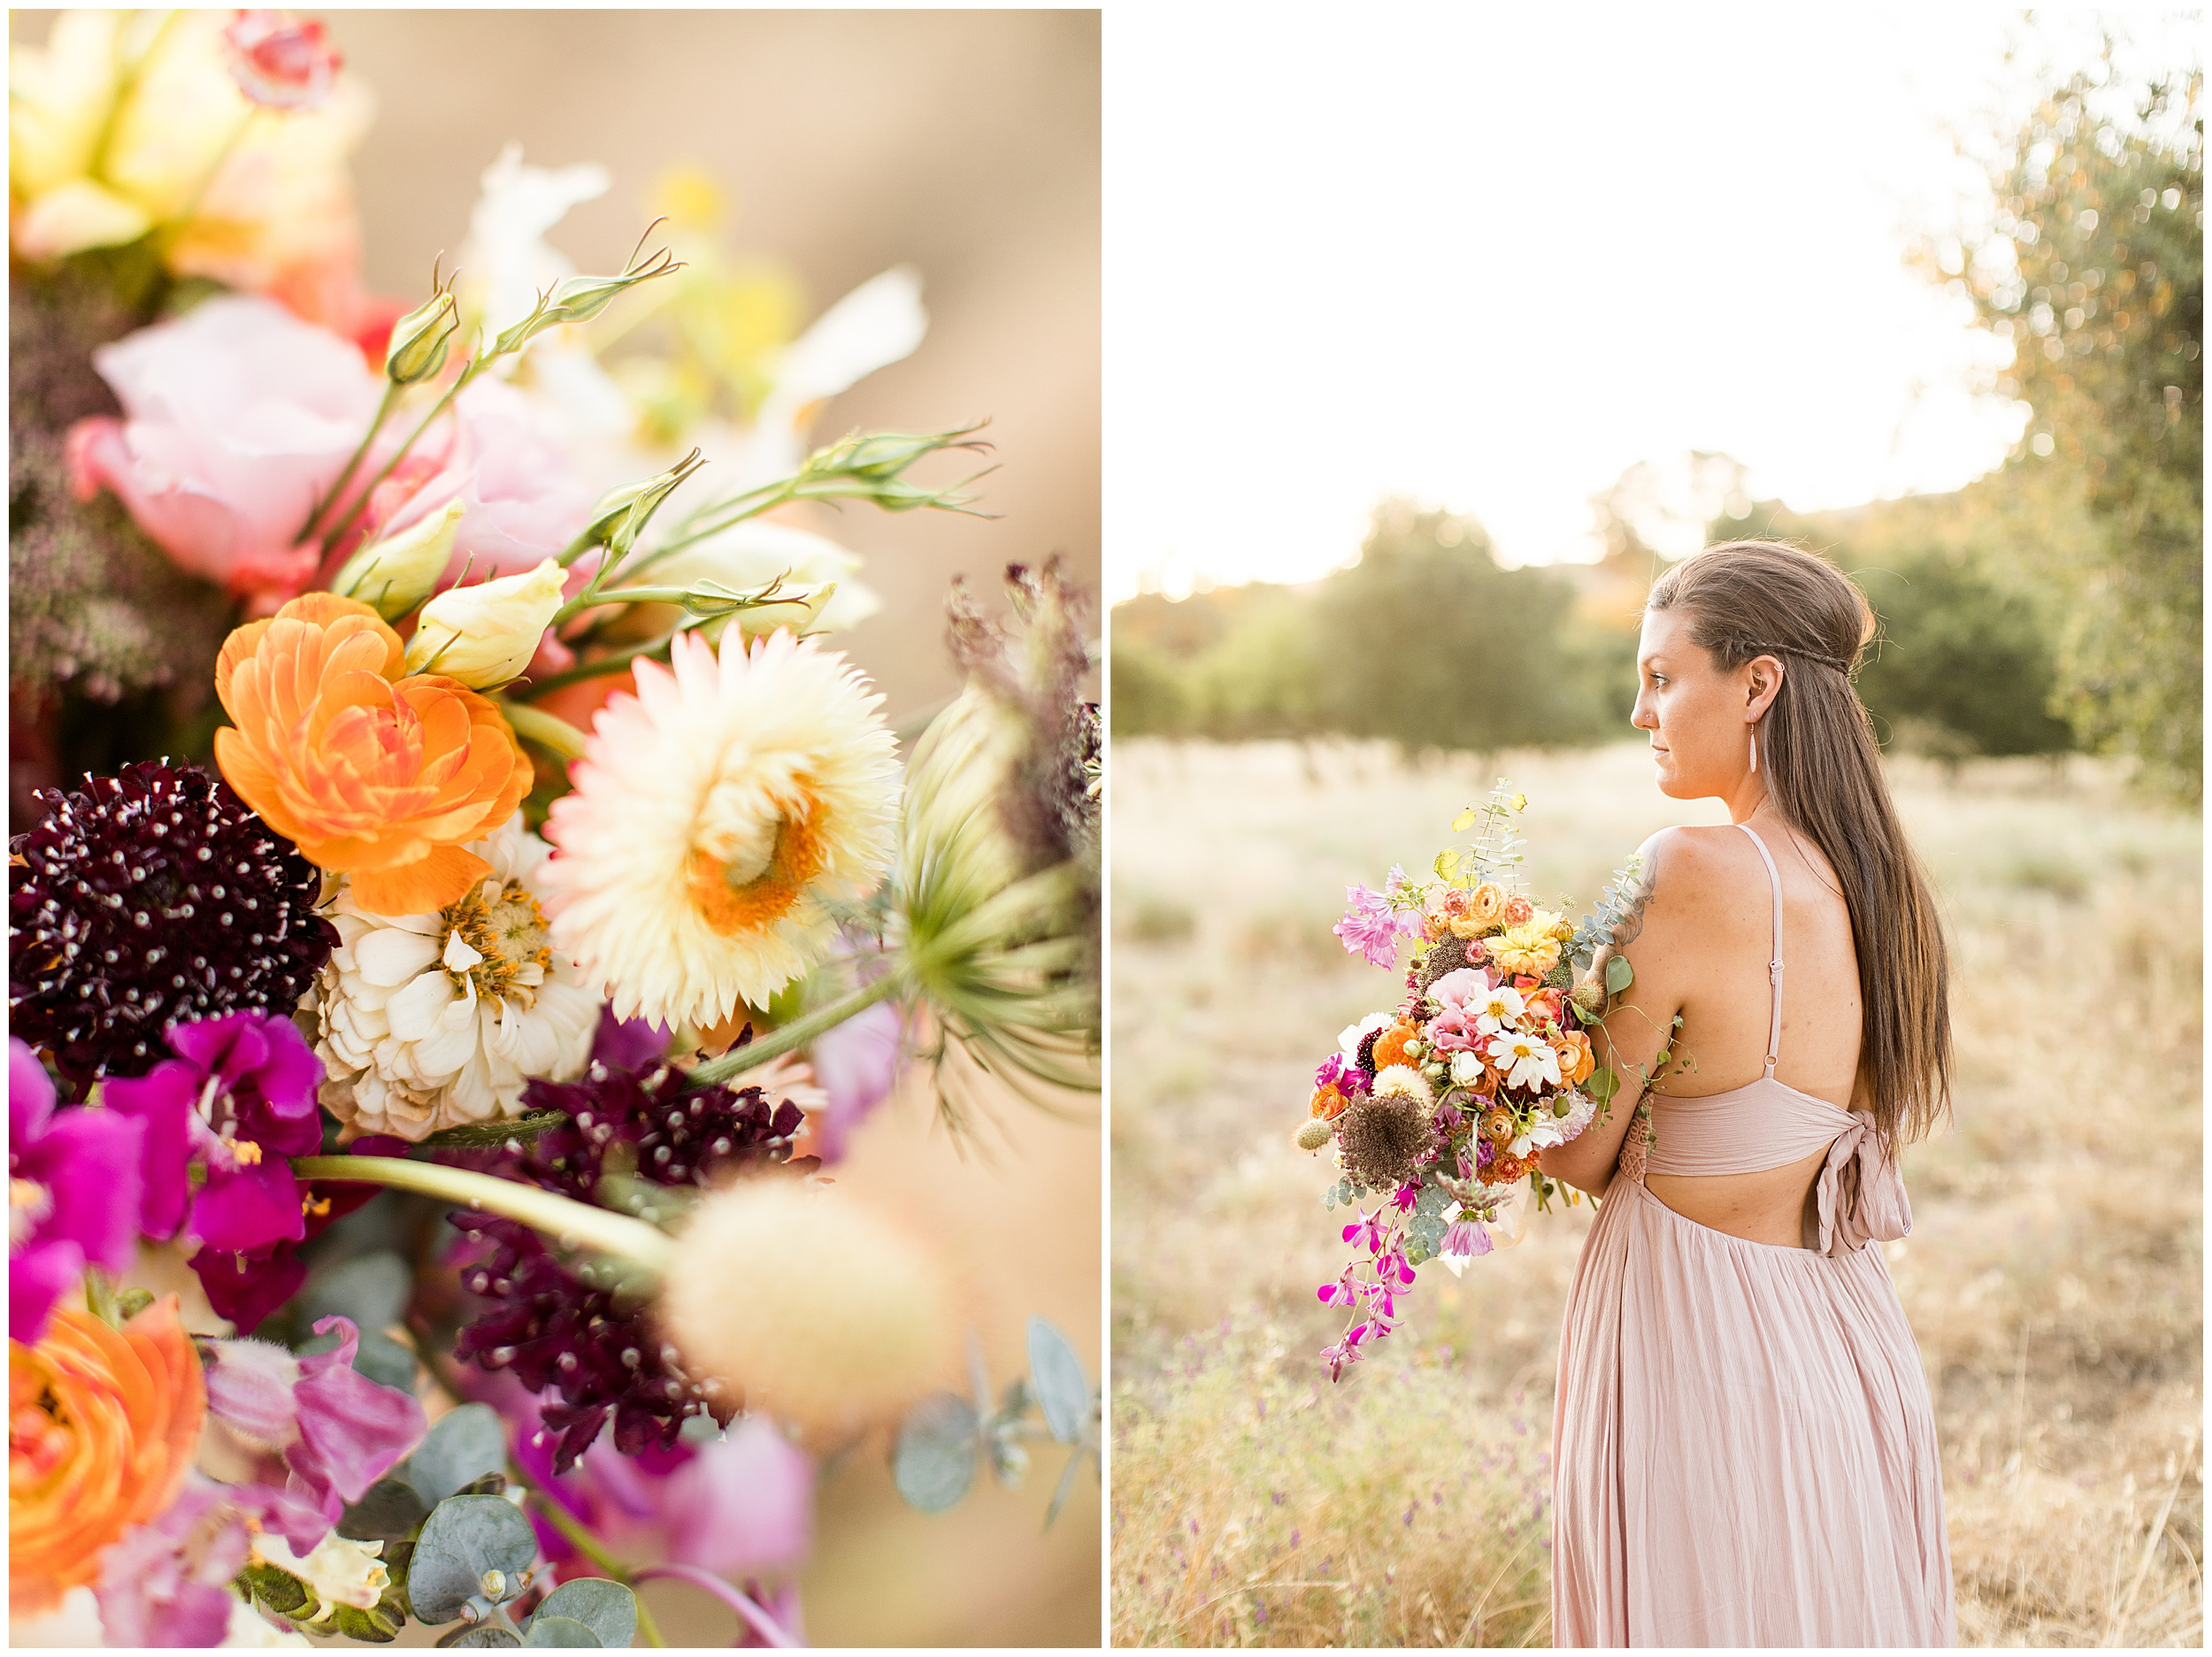 2019 bay area wedding photographer colorful florals flowers styled engagement session Angela Sue Photography_0028.jpg